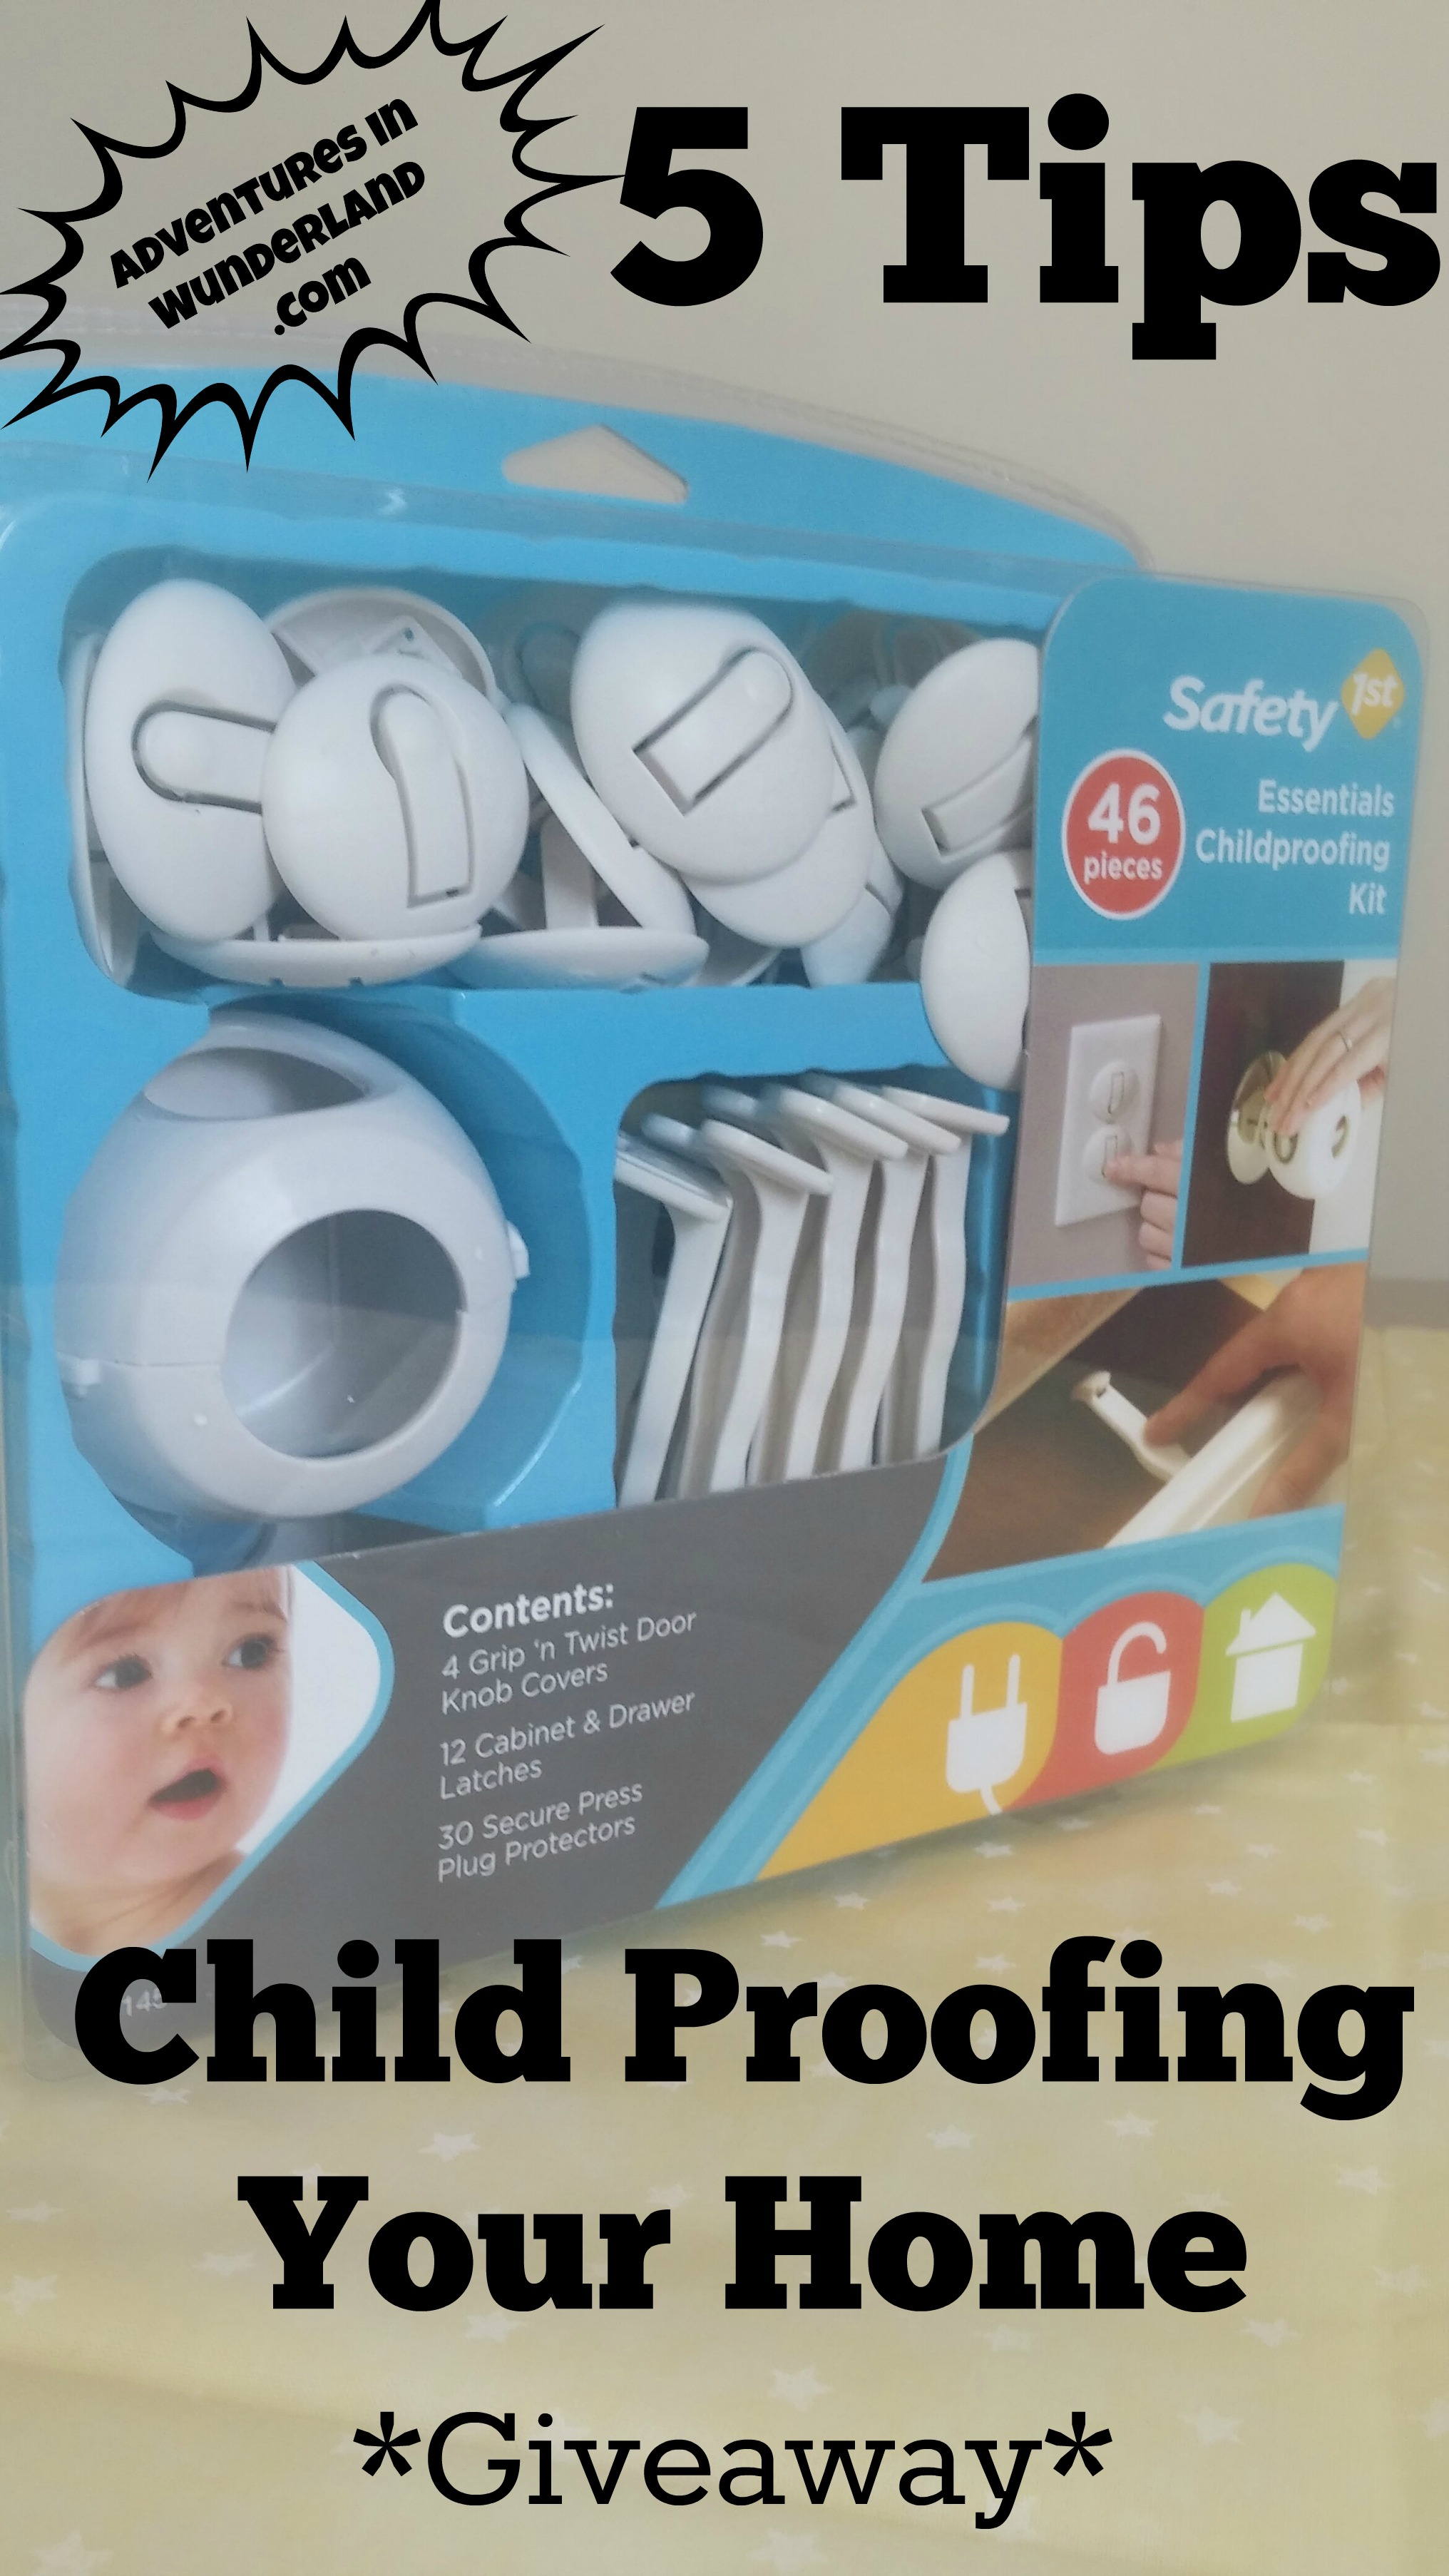 5 Tips for Child Proofing Your Home and Safety 1st Giveaway